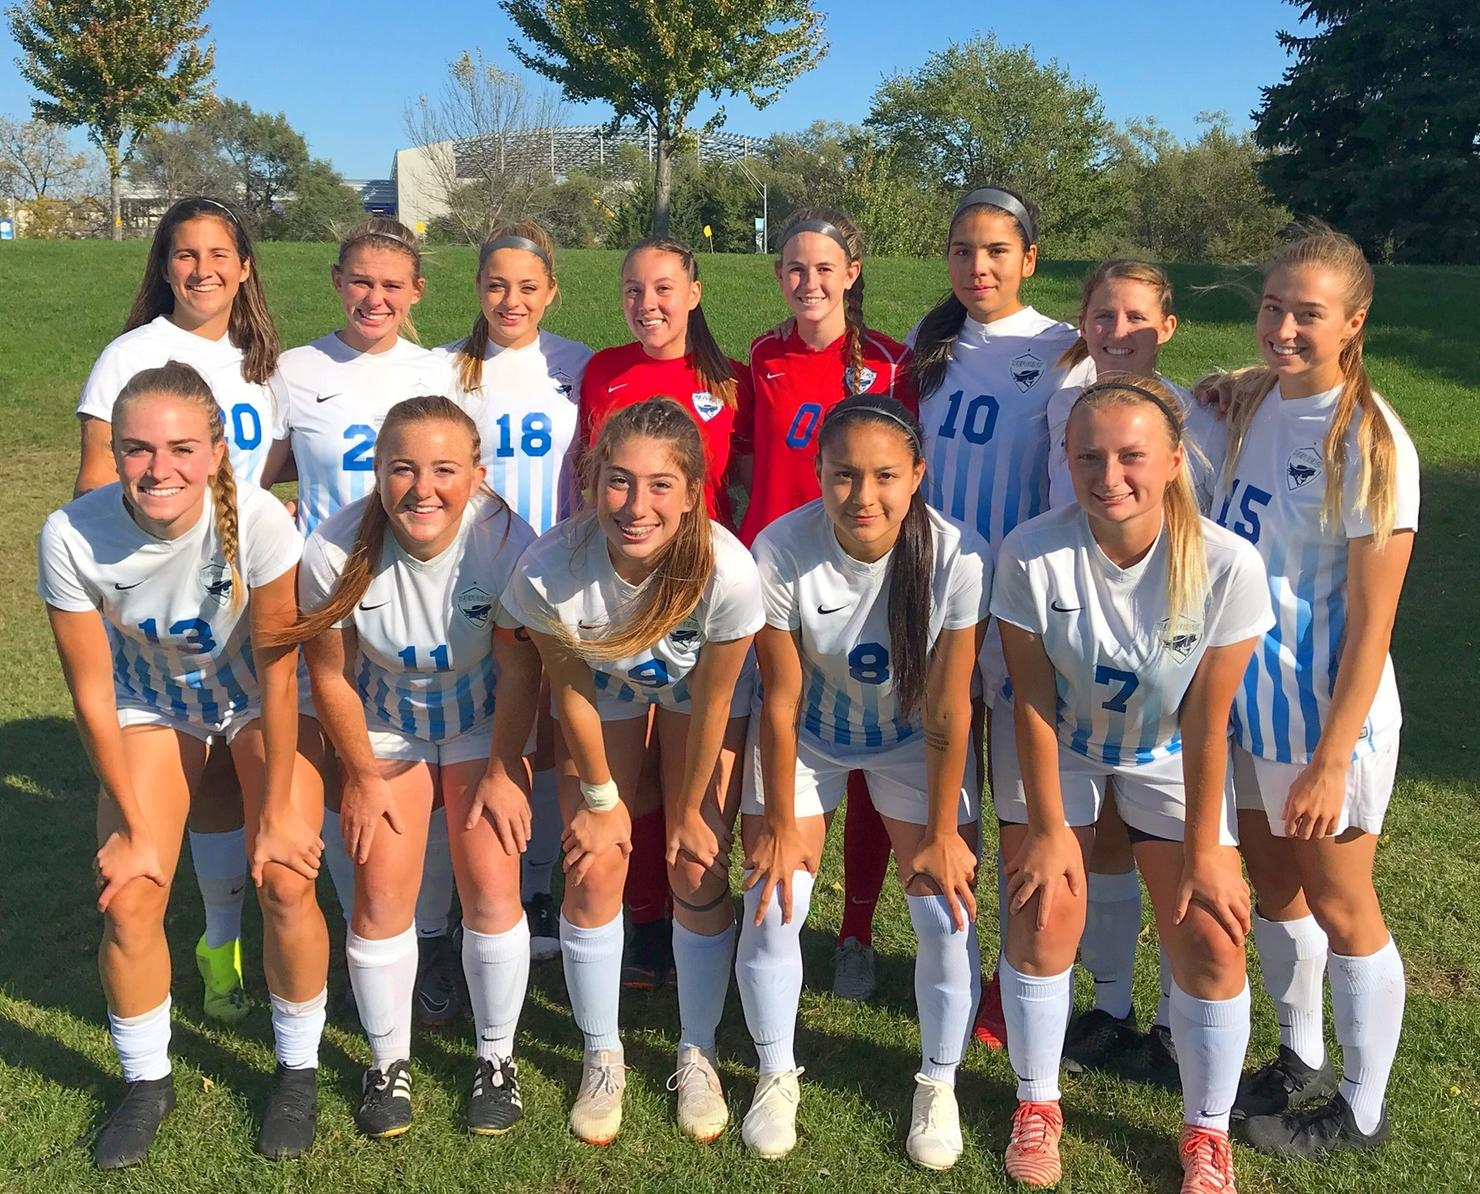 Reivers beat Hawkeye 8-0 on Sophomore Day